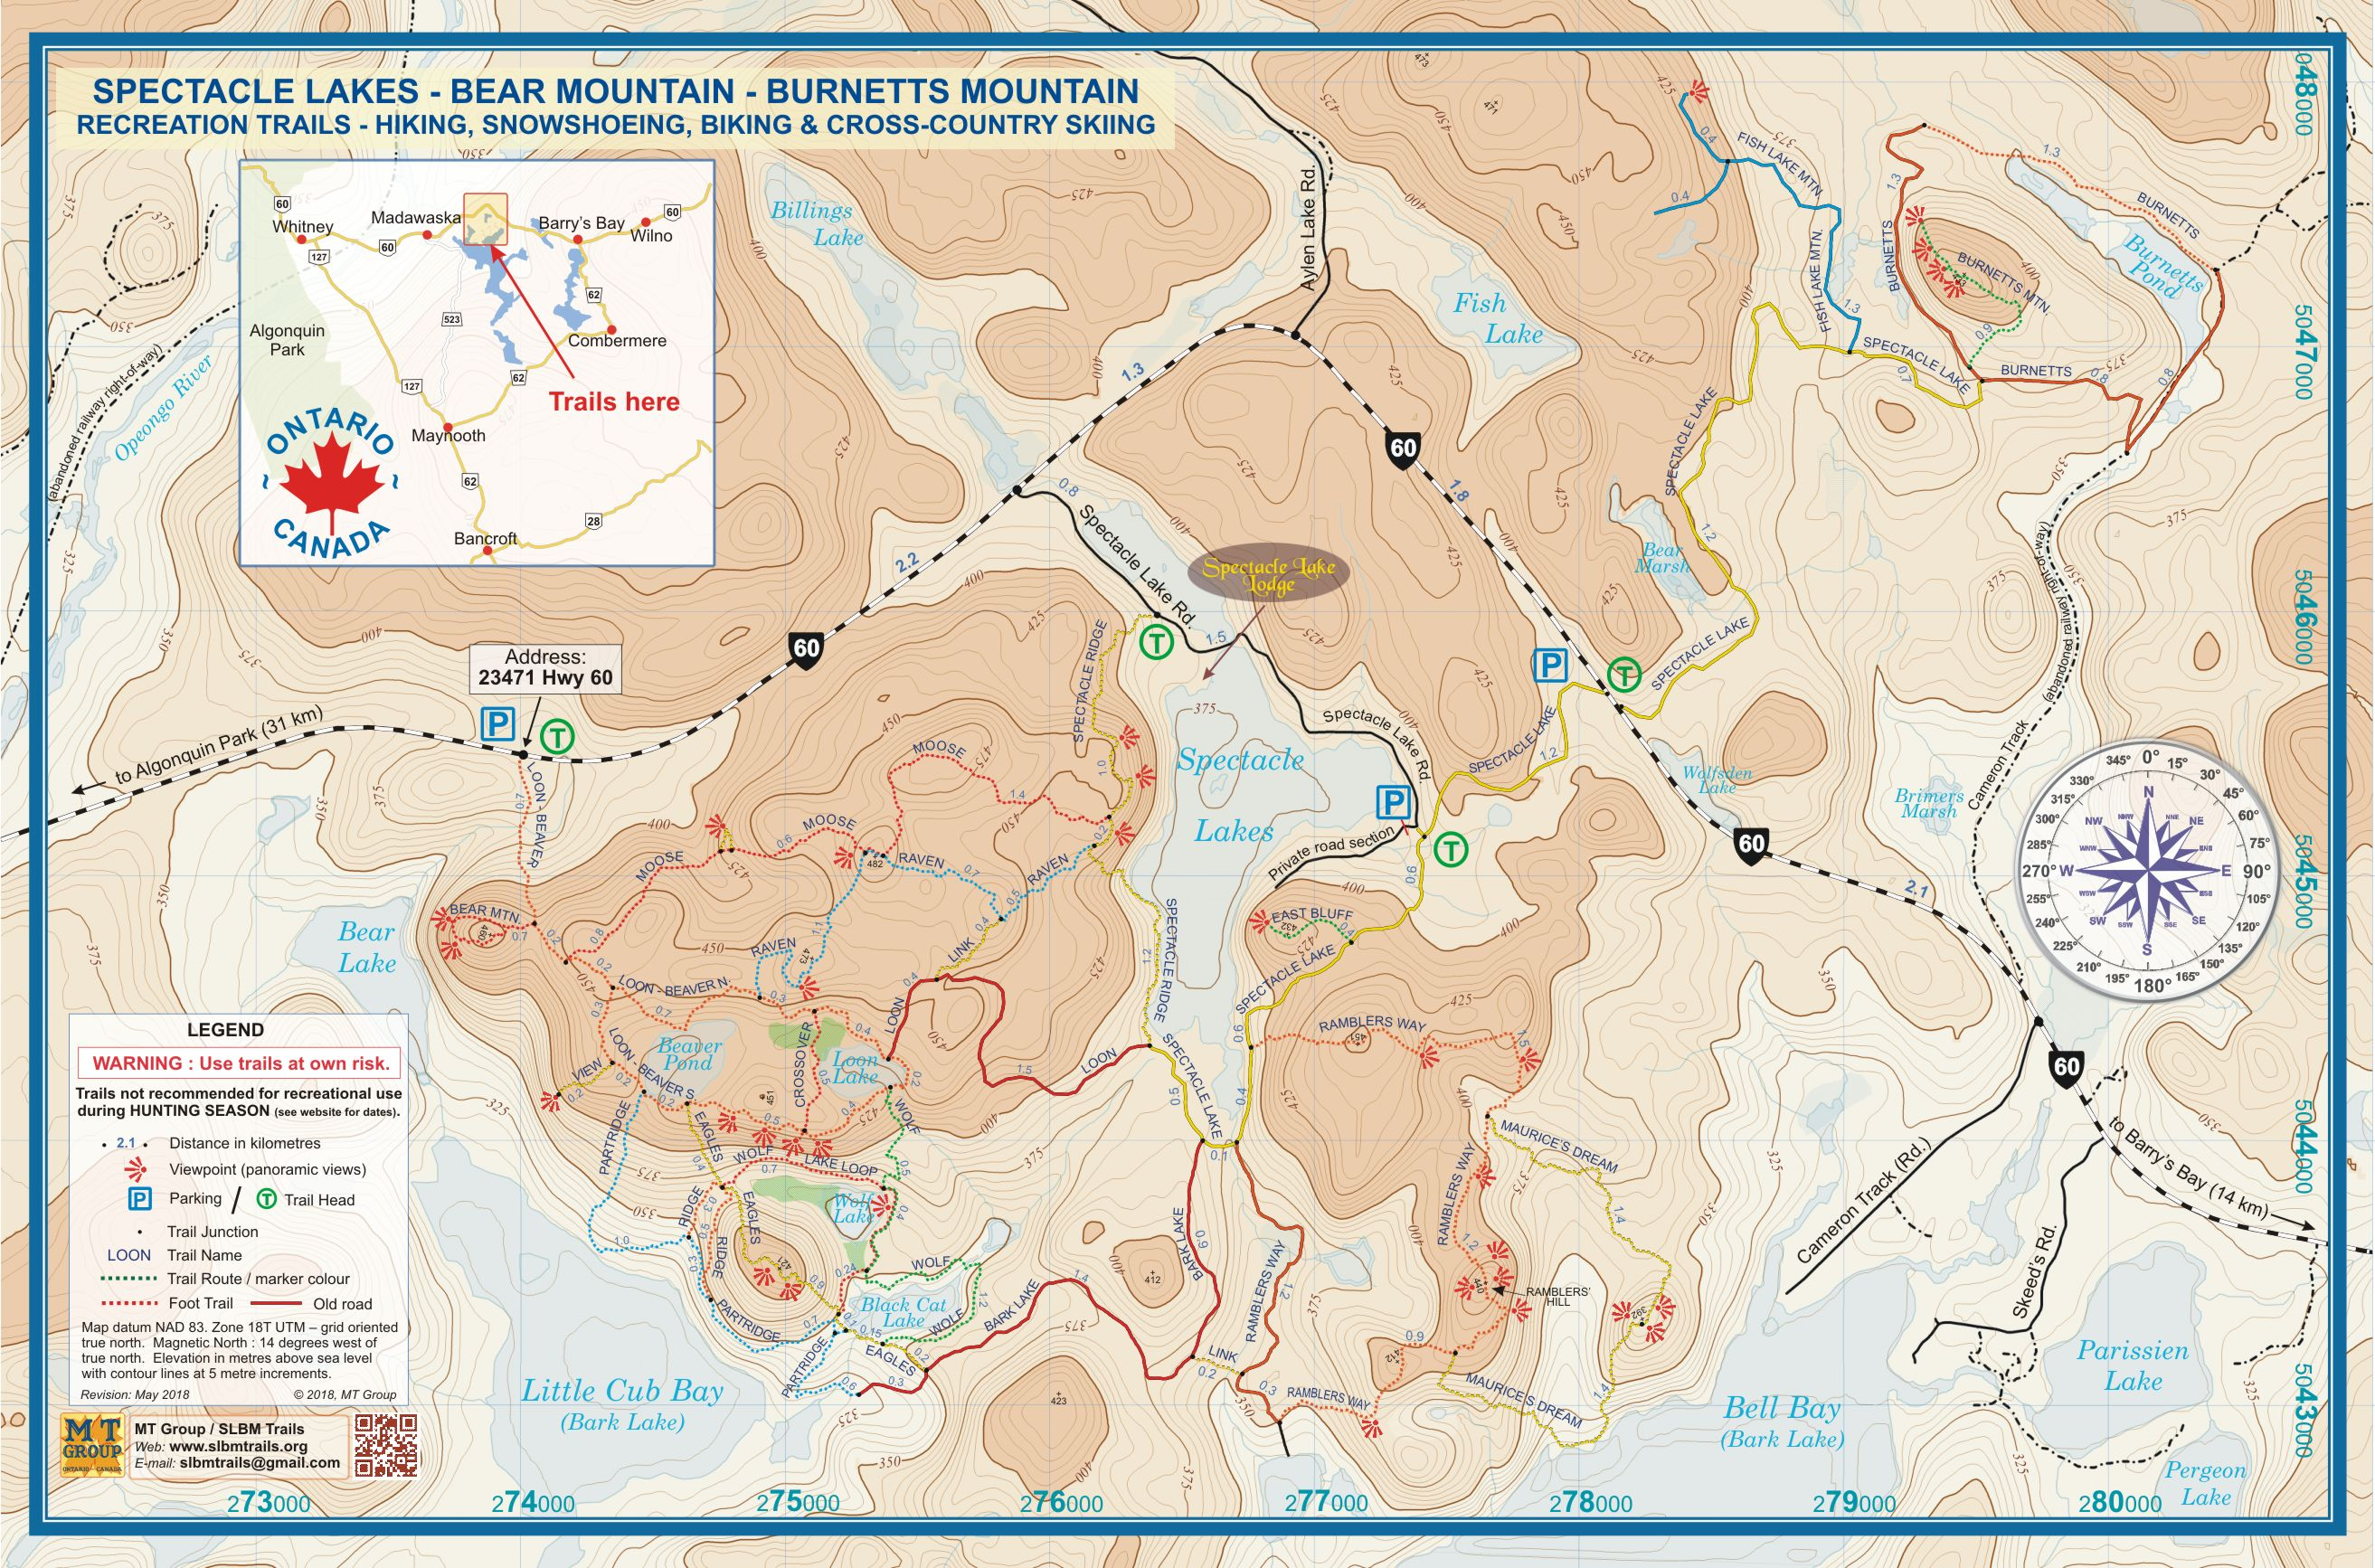 Site map spectacle lakes bear burnetts mtns recreation trails trail maps for download jpg high resolution png or print pdf tabloid size 2 page letter size gumiabroncs Choice Image